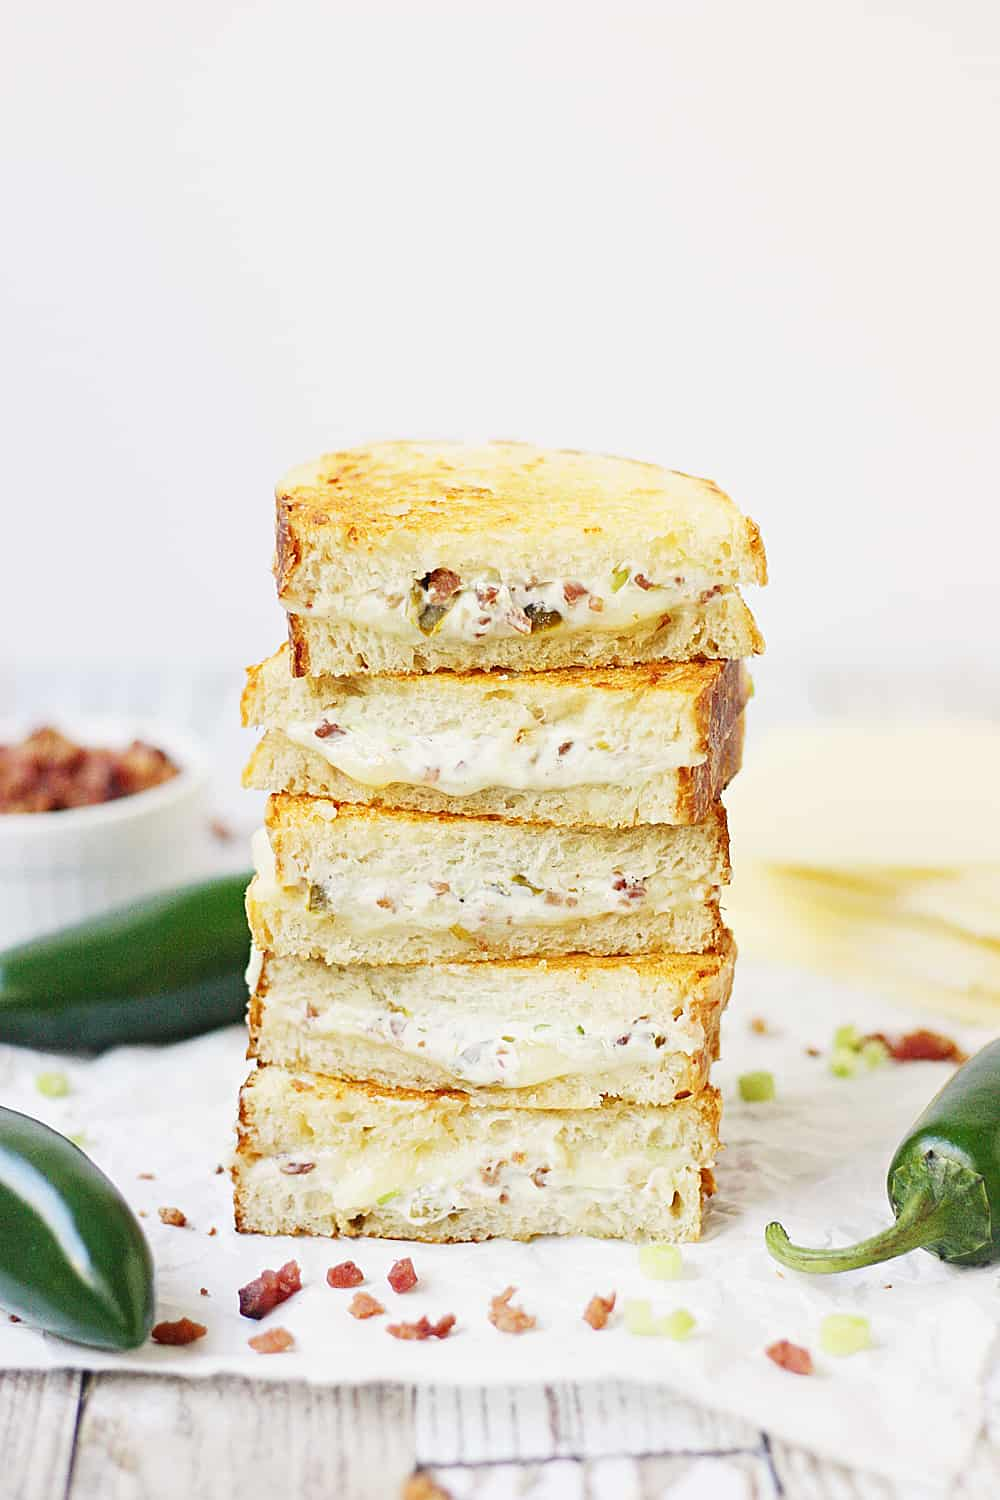 Jalapeno Popper Grilled Cheese Sandwich | Half-Scratched